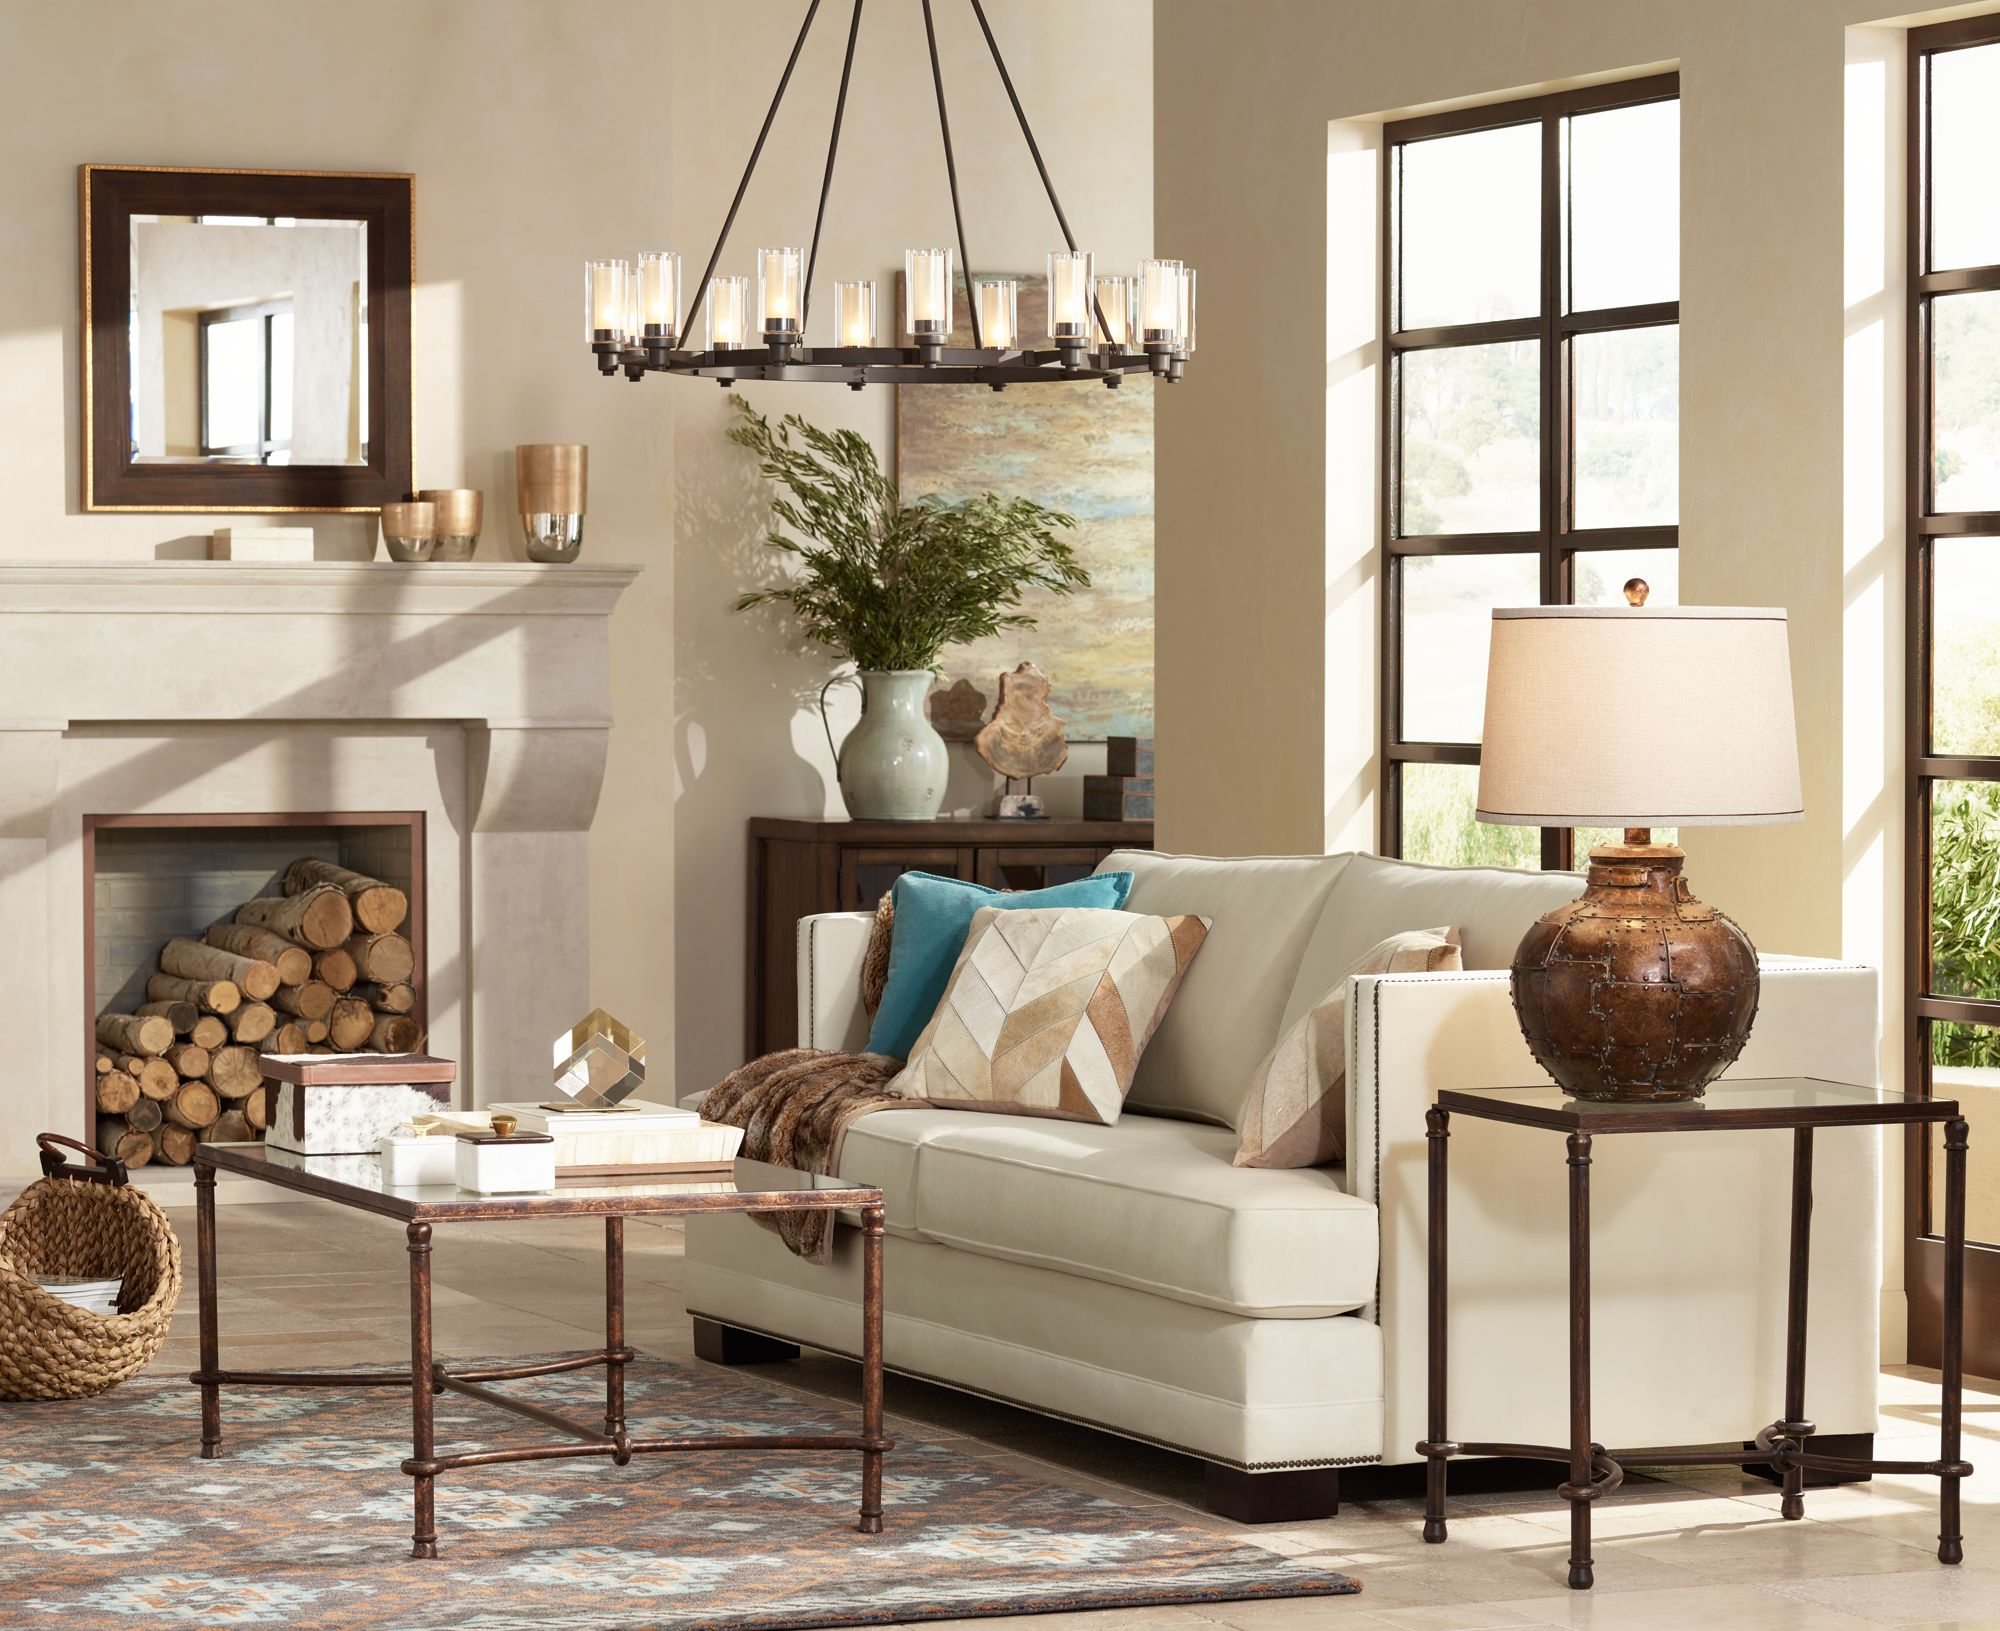 A Large Chandelier Anchors A Cozy Living Room With Rustic Touches.